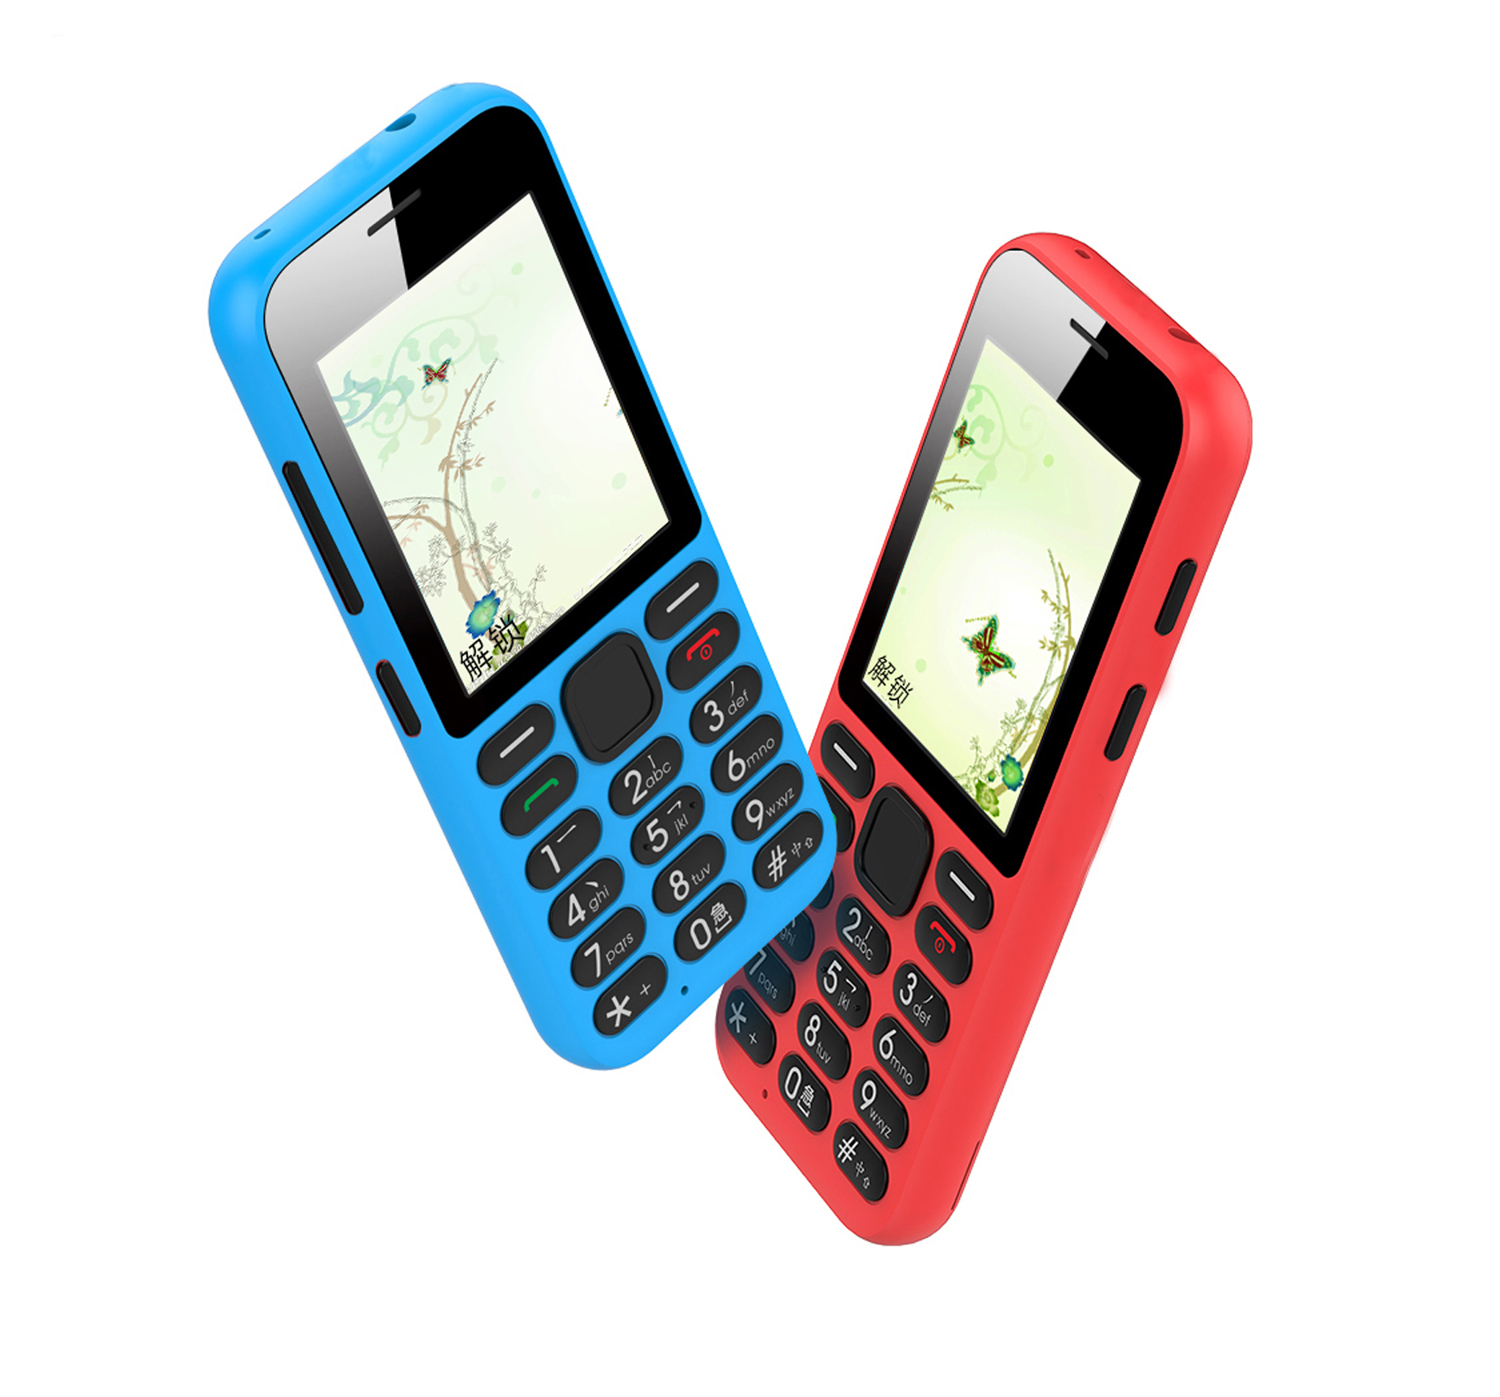 Colorful mobile phone, torch feature senior phone